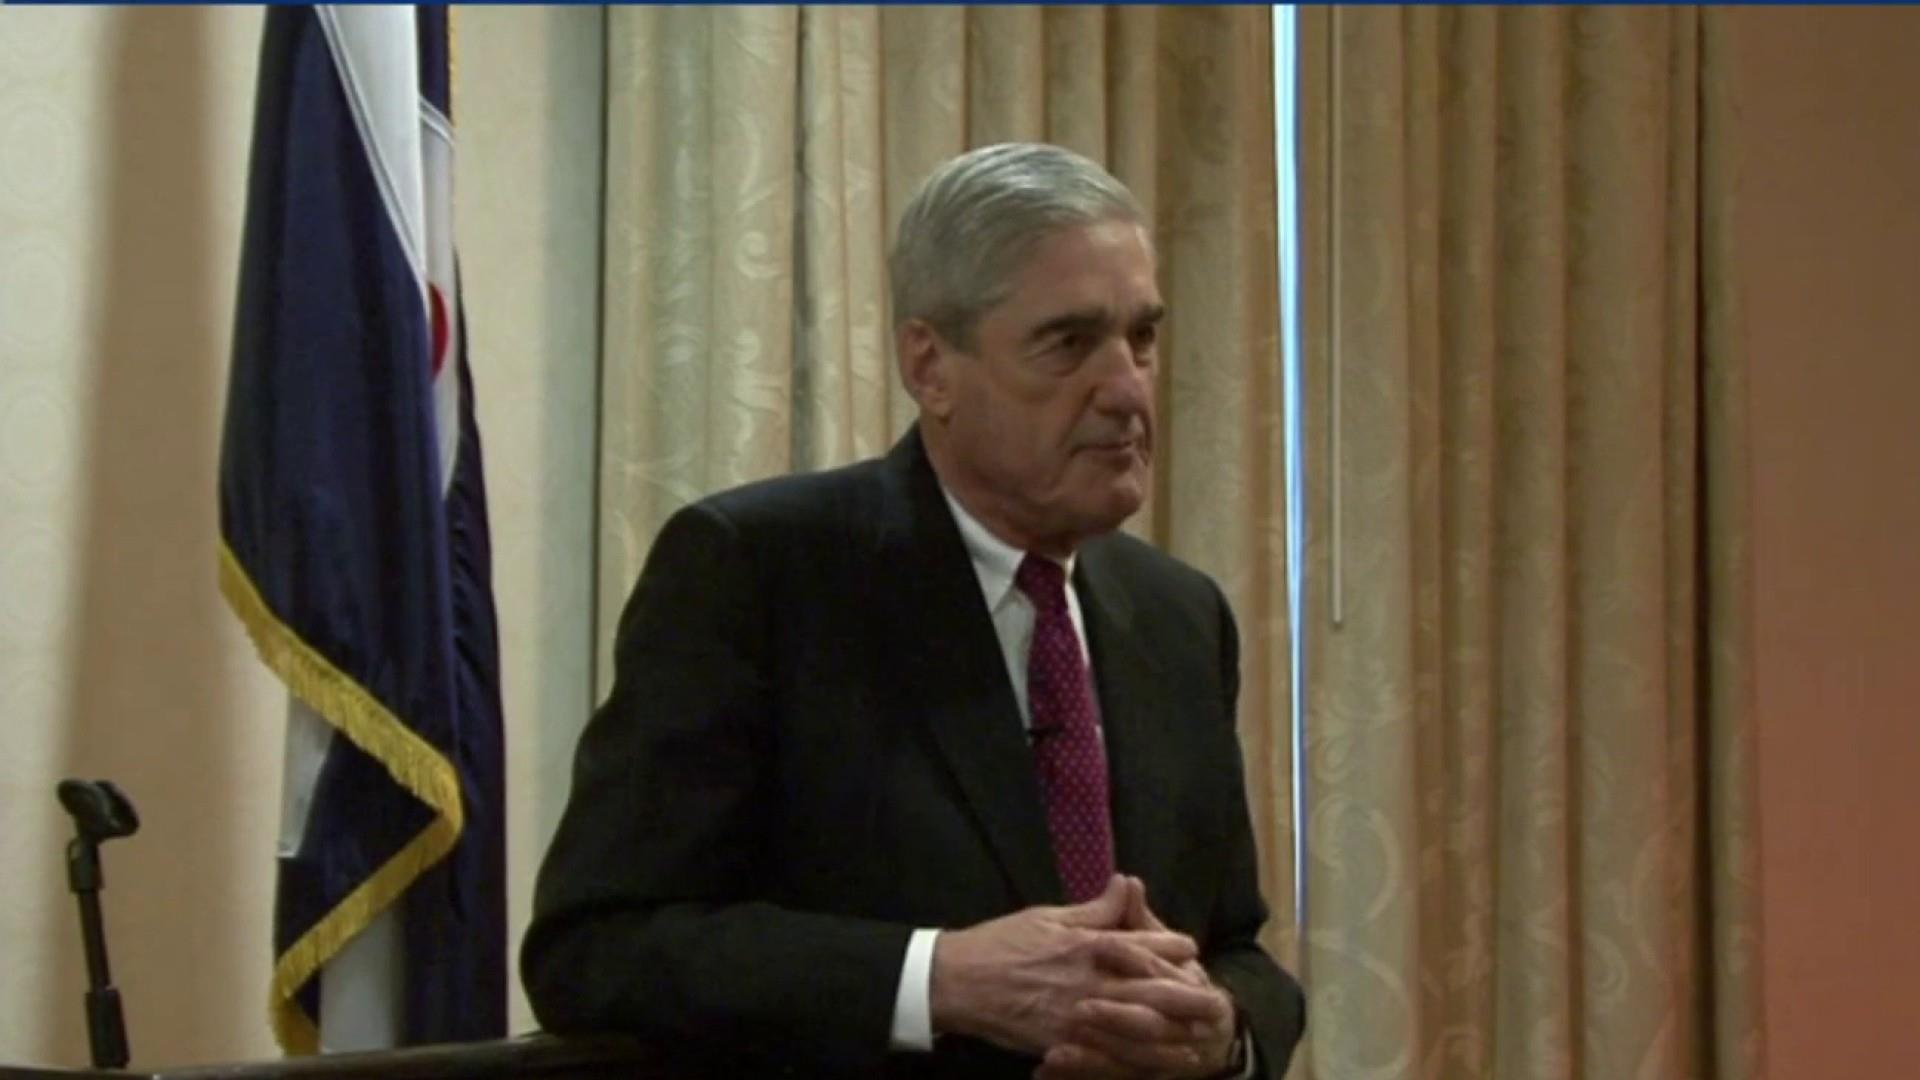 Mueller makes history exposing crime spree by former Trump aides